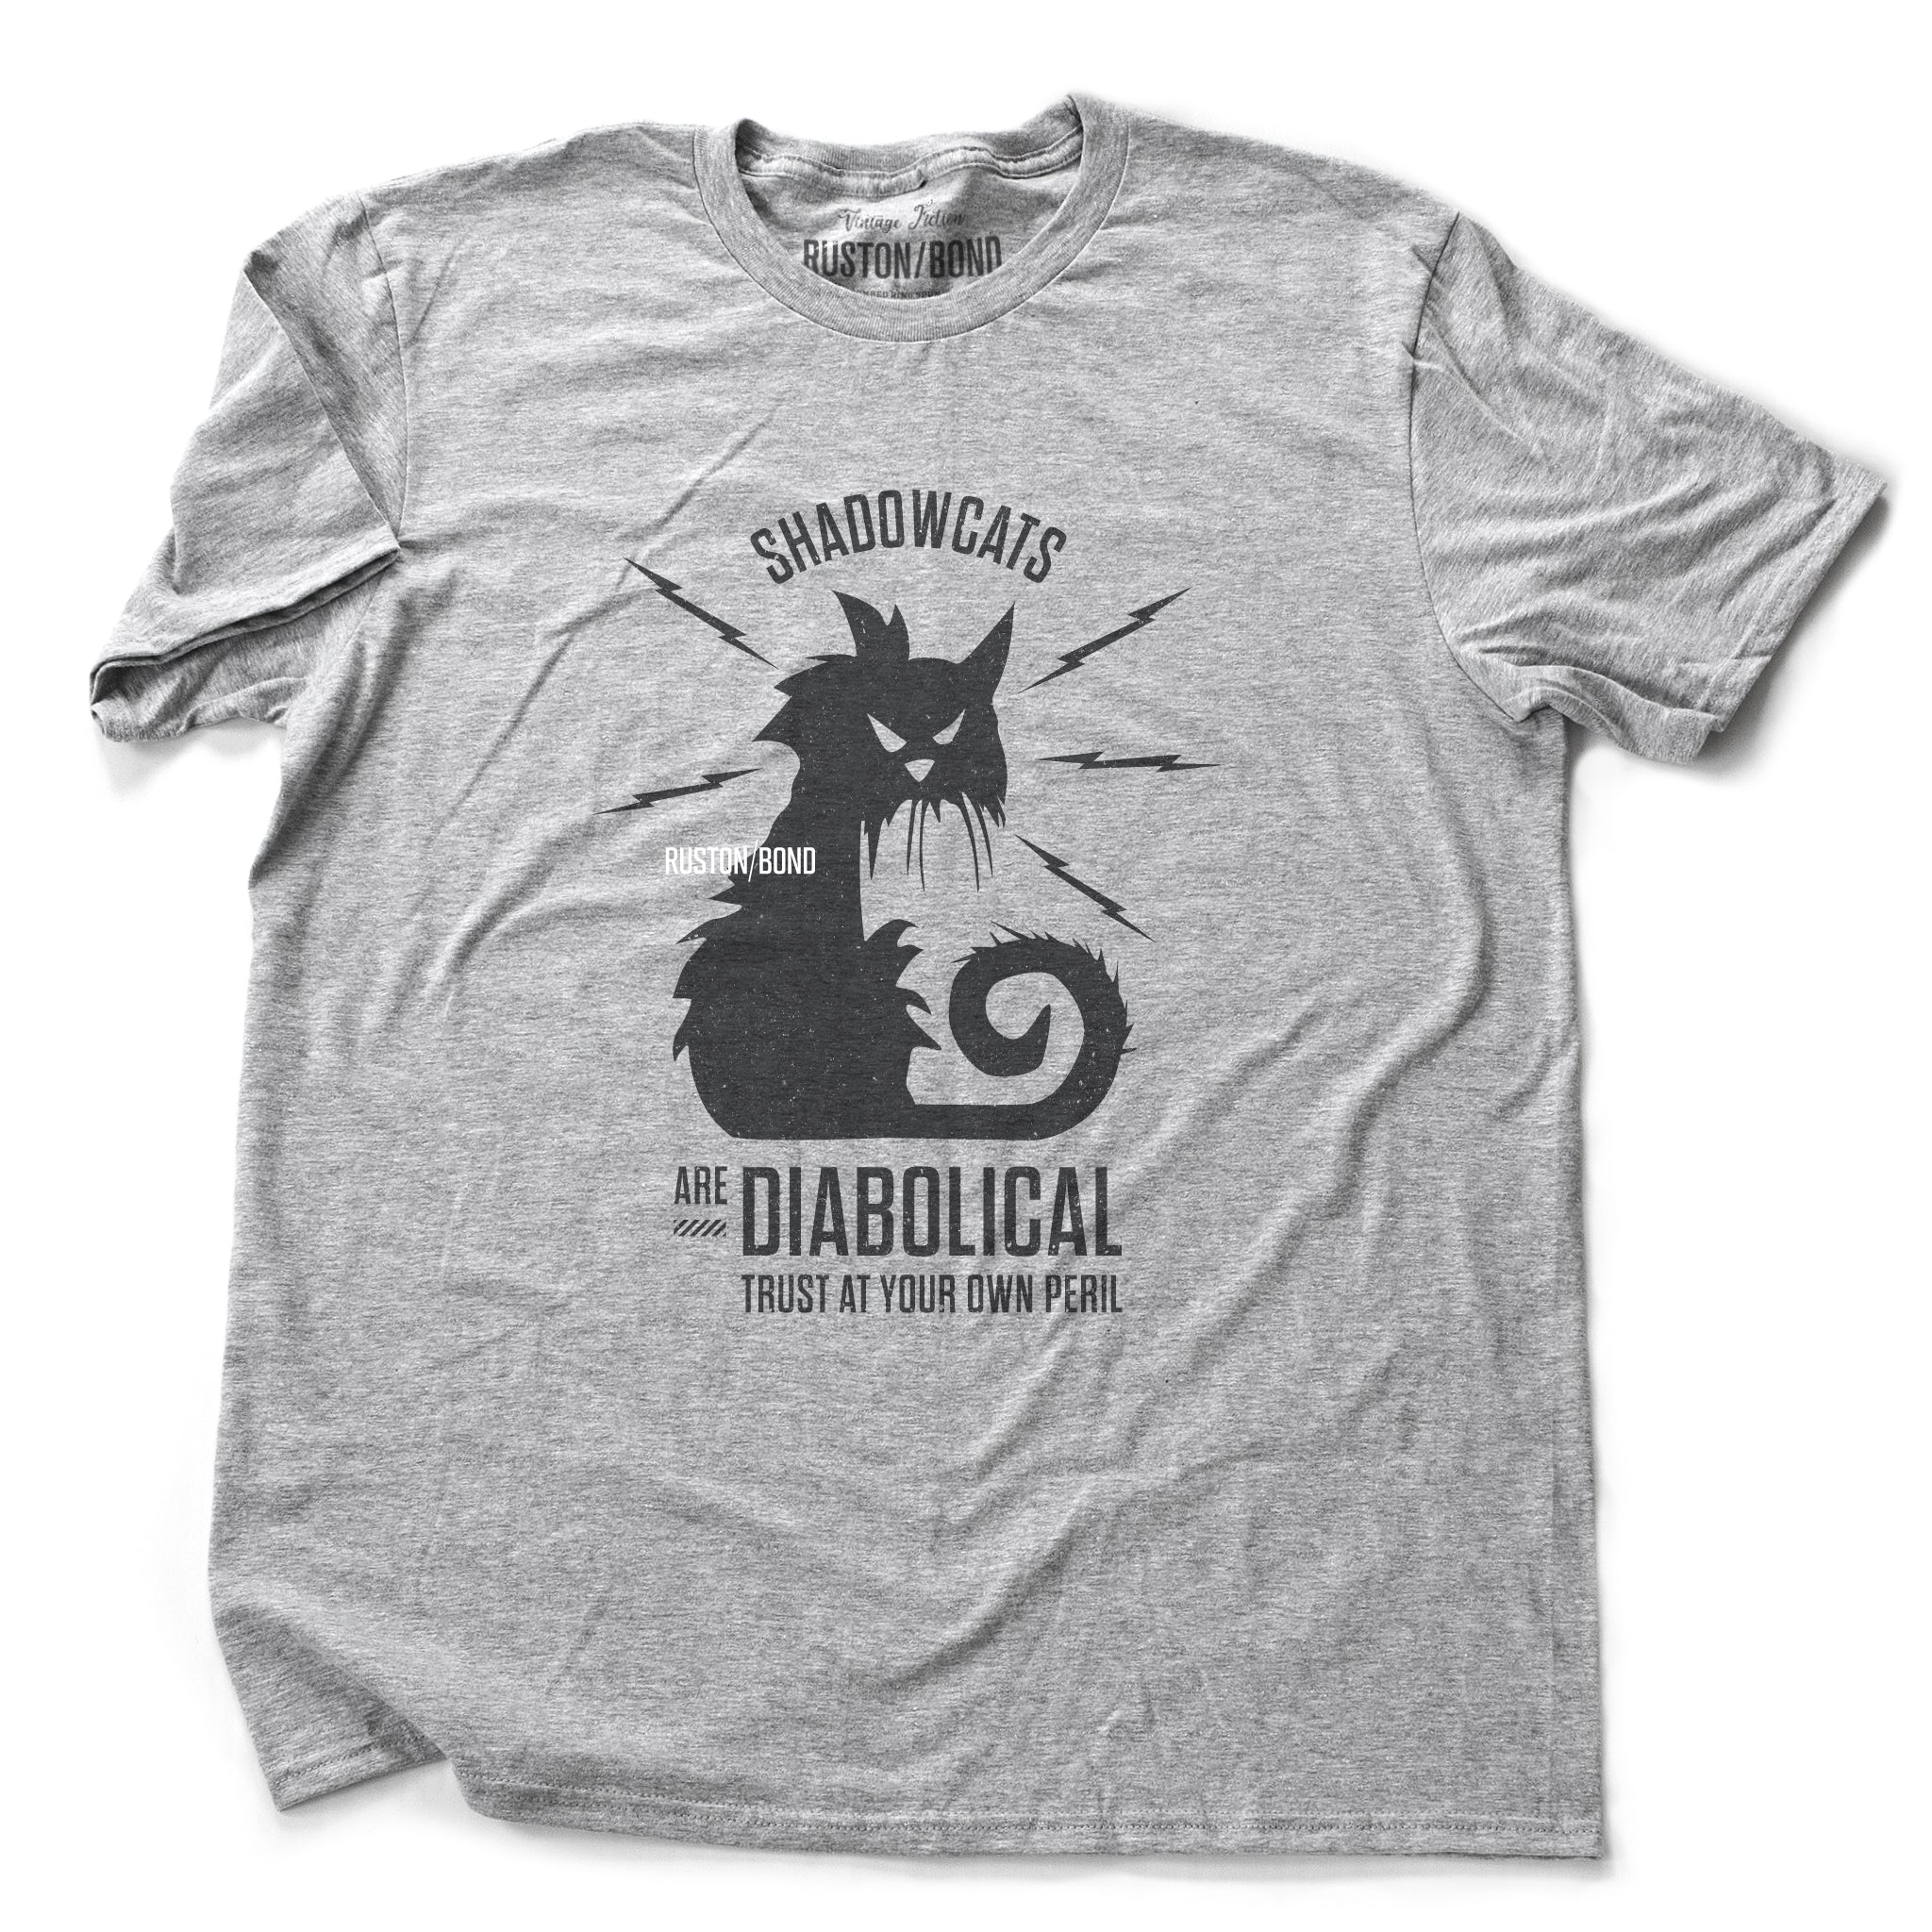 "A sarcastic retro graphic t-shirt in Heather Gray, with a classic vintage design, featuring an angry, electric cat surrounded by the words ""Shadowcats are diabolical—trust at your own peril."" By fashion brand Ruston/Bond, for wolfsaint.net"